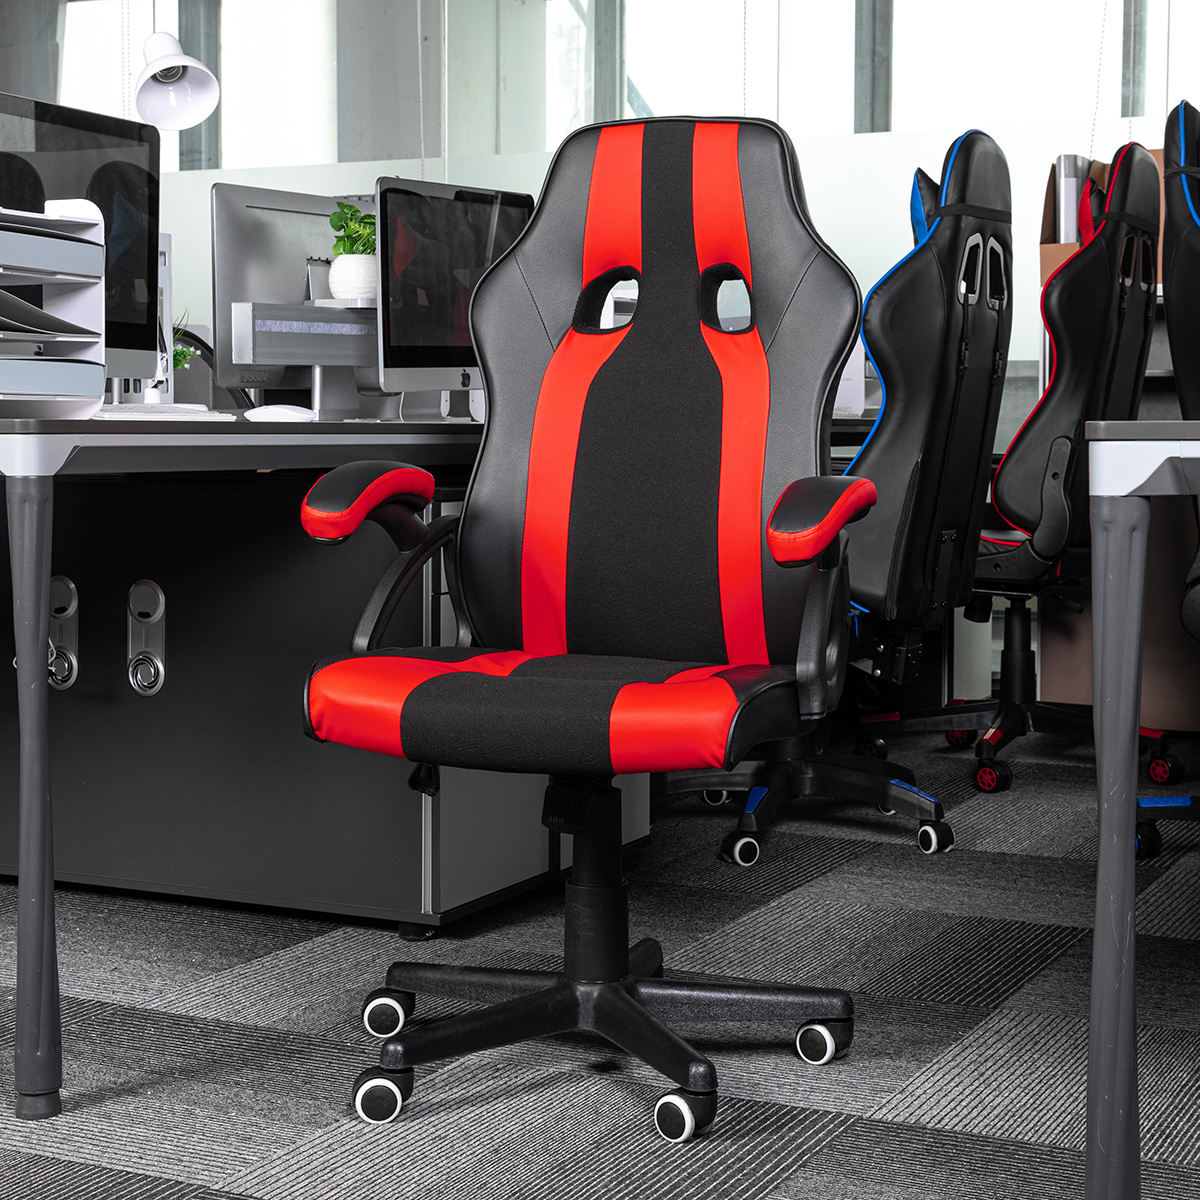 Details about  /Office Chair Desk Leather Gaming Chair High Back Ergonomic Adjustable Racing ...